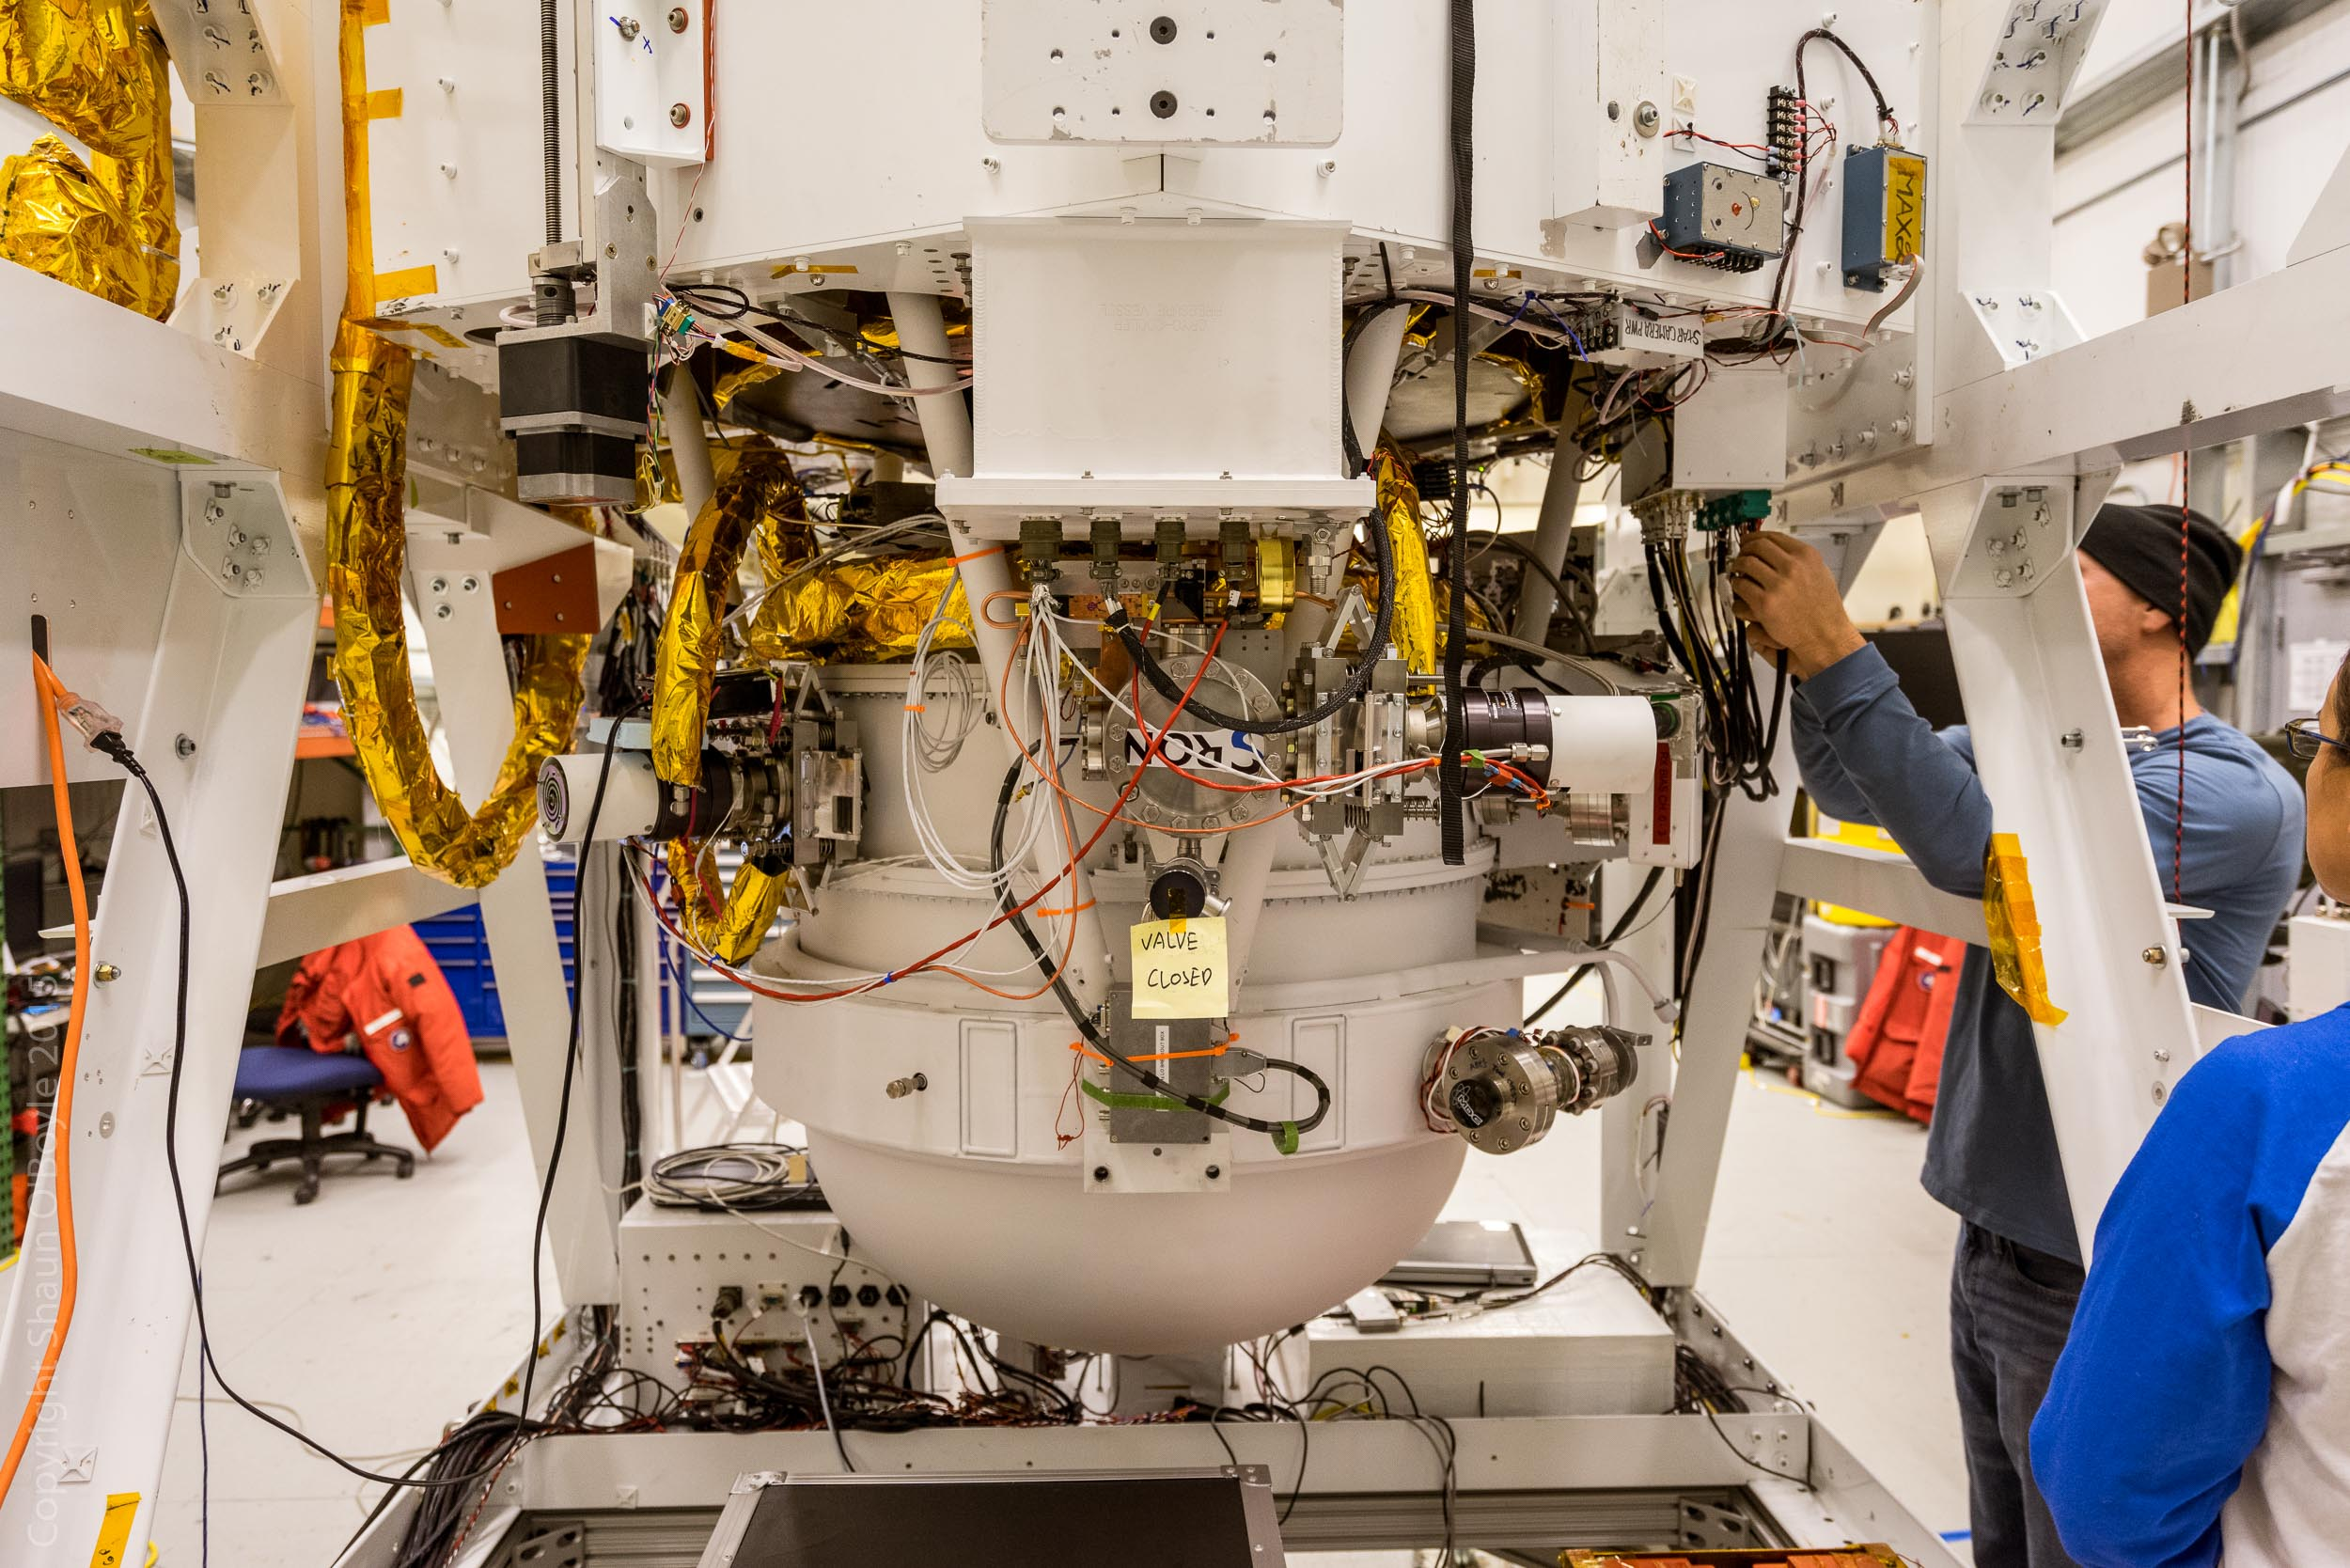 The Stratospheric TeraHertz Observatory (STO) is a NASA funded, Long Duration Balloon (LDB) experiment designed to address a key problem in modern astrophysics: understanding the Life Cycle of the Interstellar Medium (ISM). STO itself has three main components; 1) an 80 cm optical telescope, 2) a THz instrument package, and 3) a gondola.